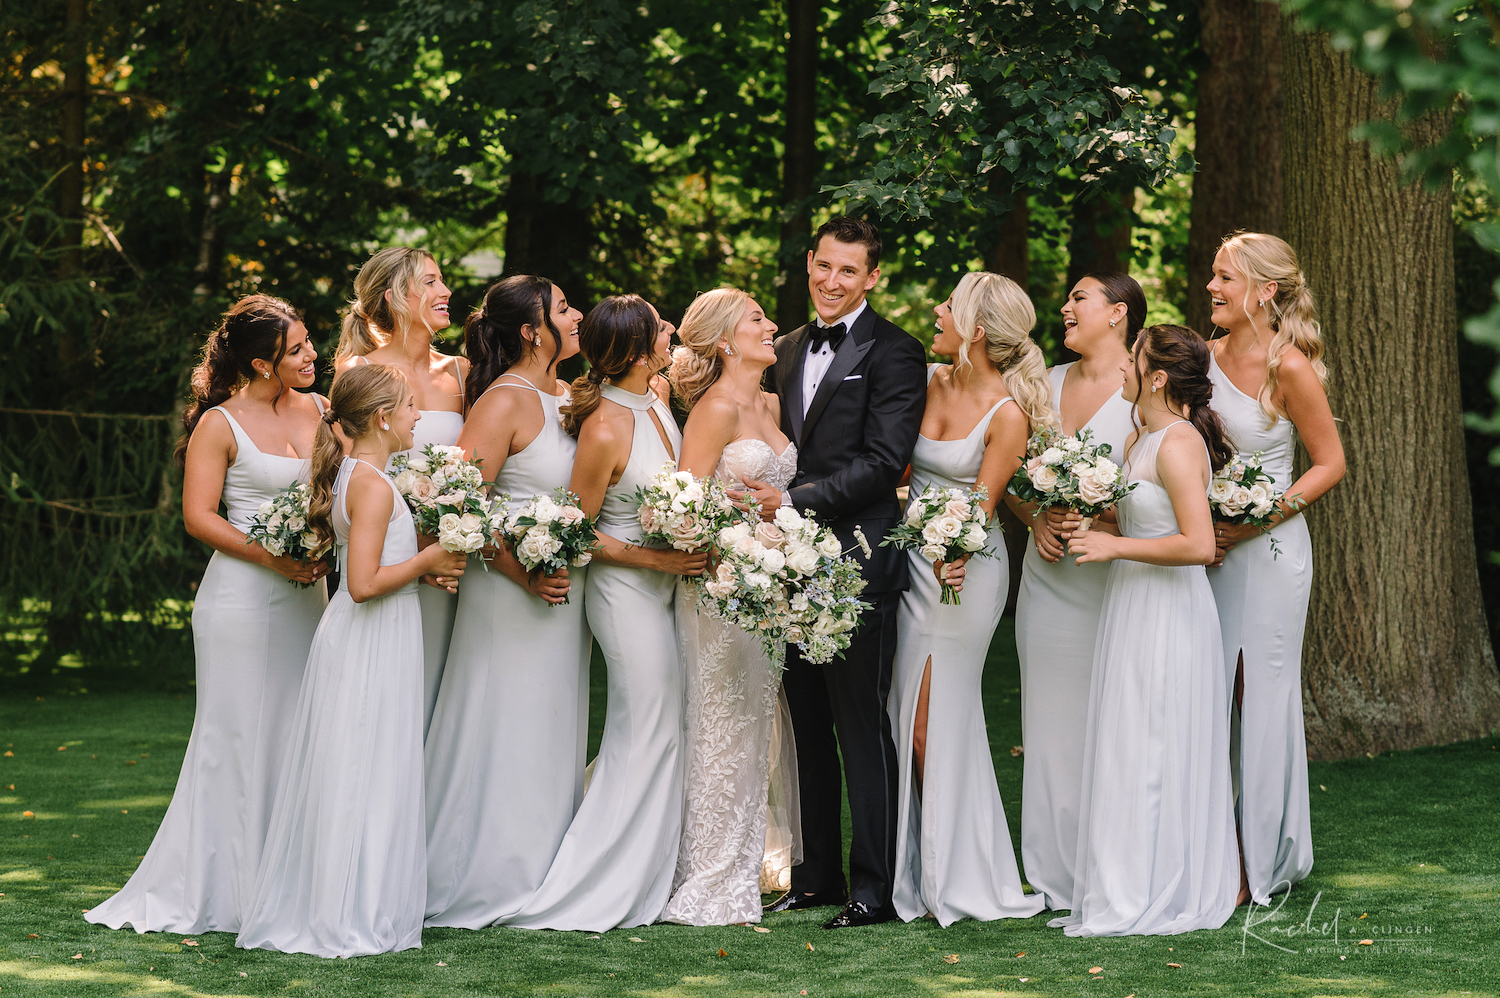 sydney strome bridal party 1